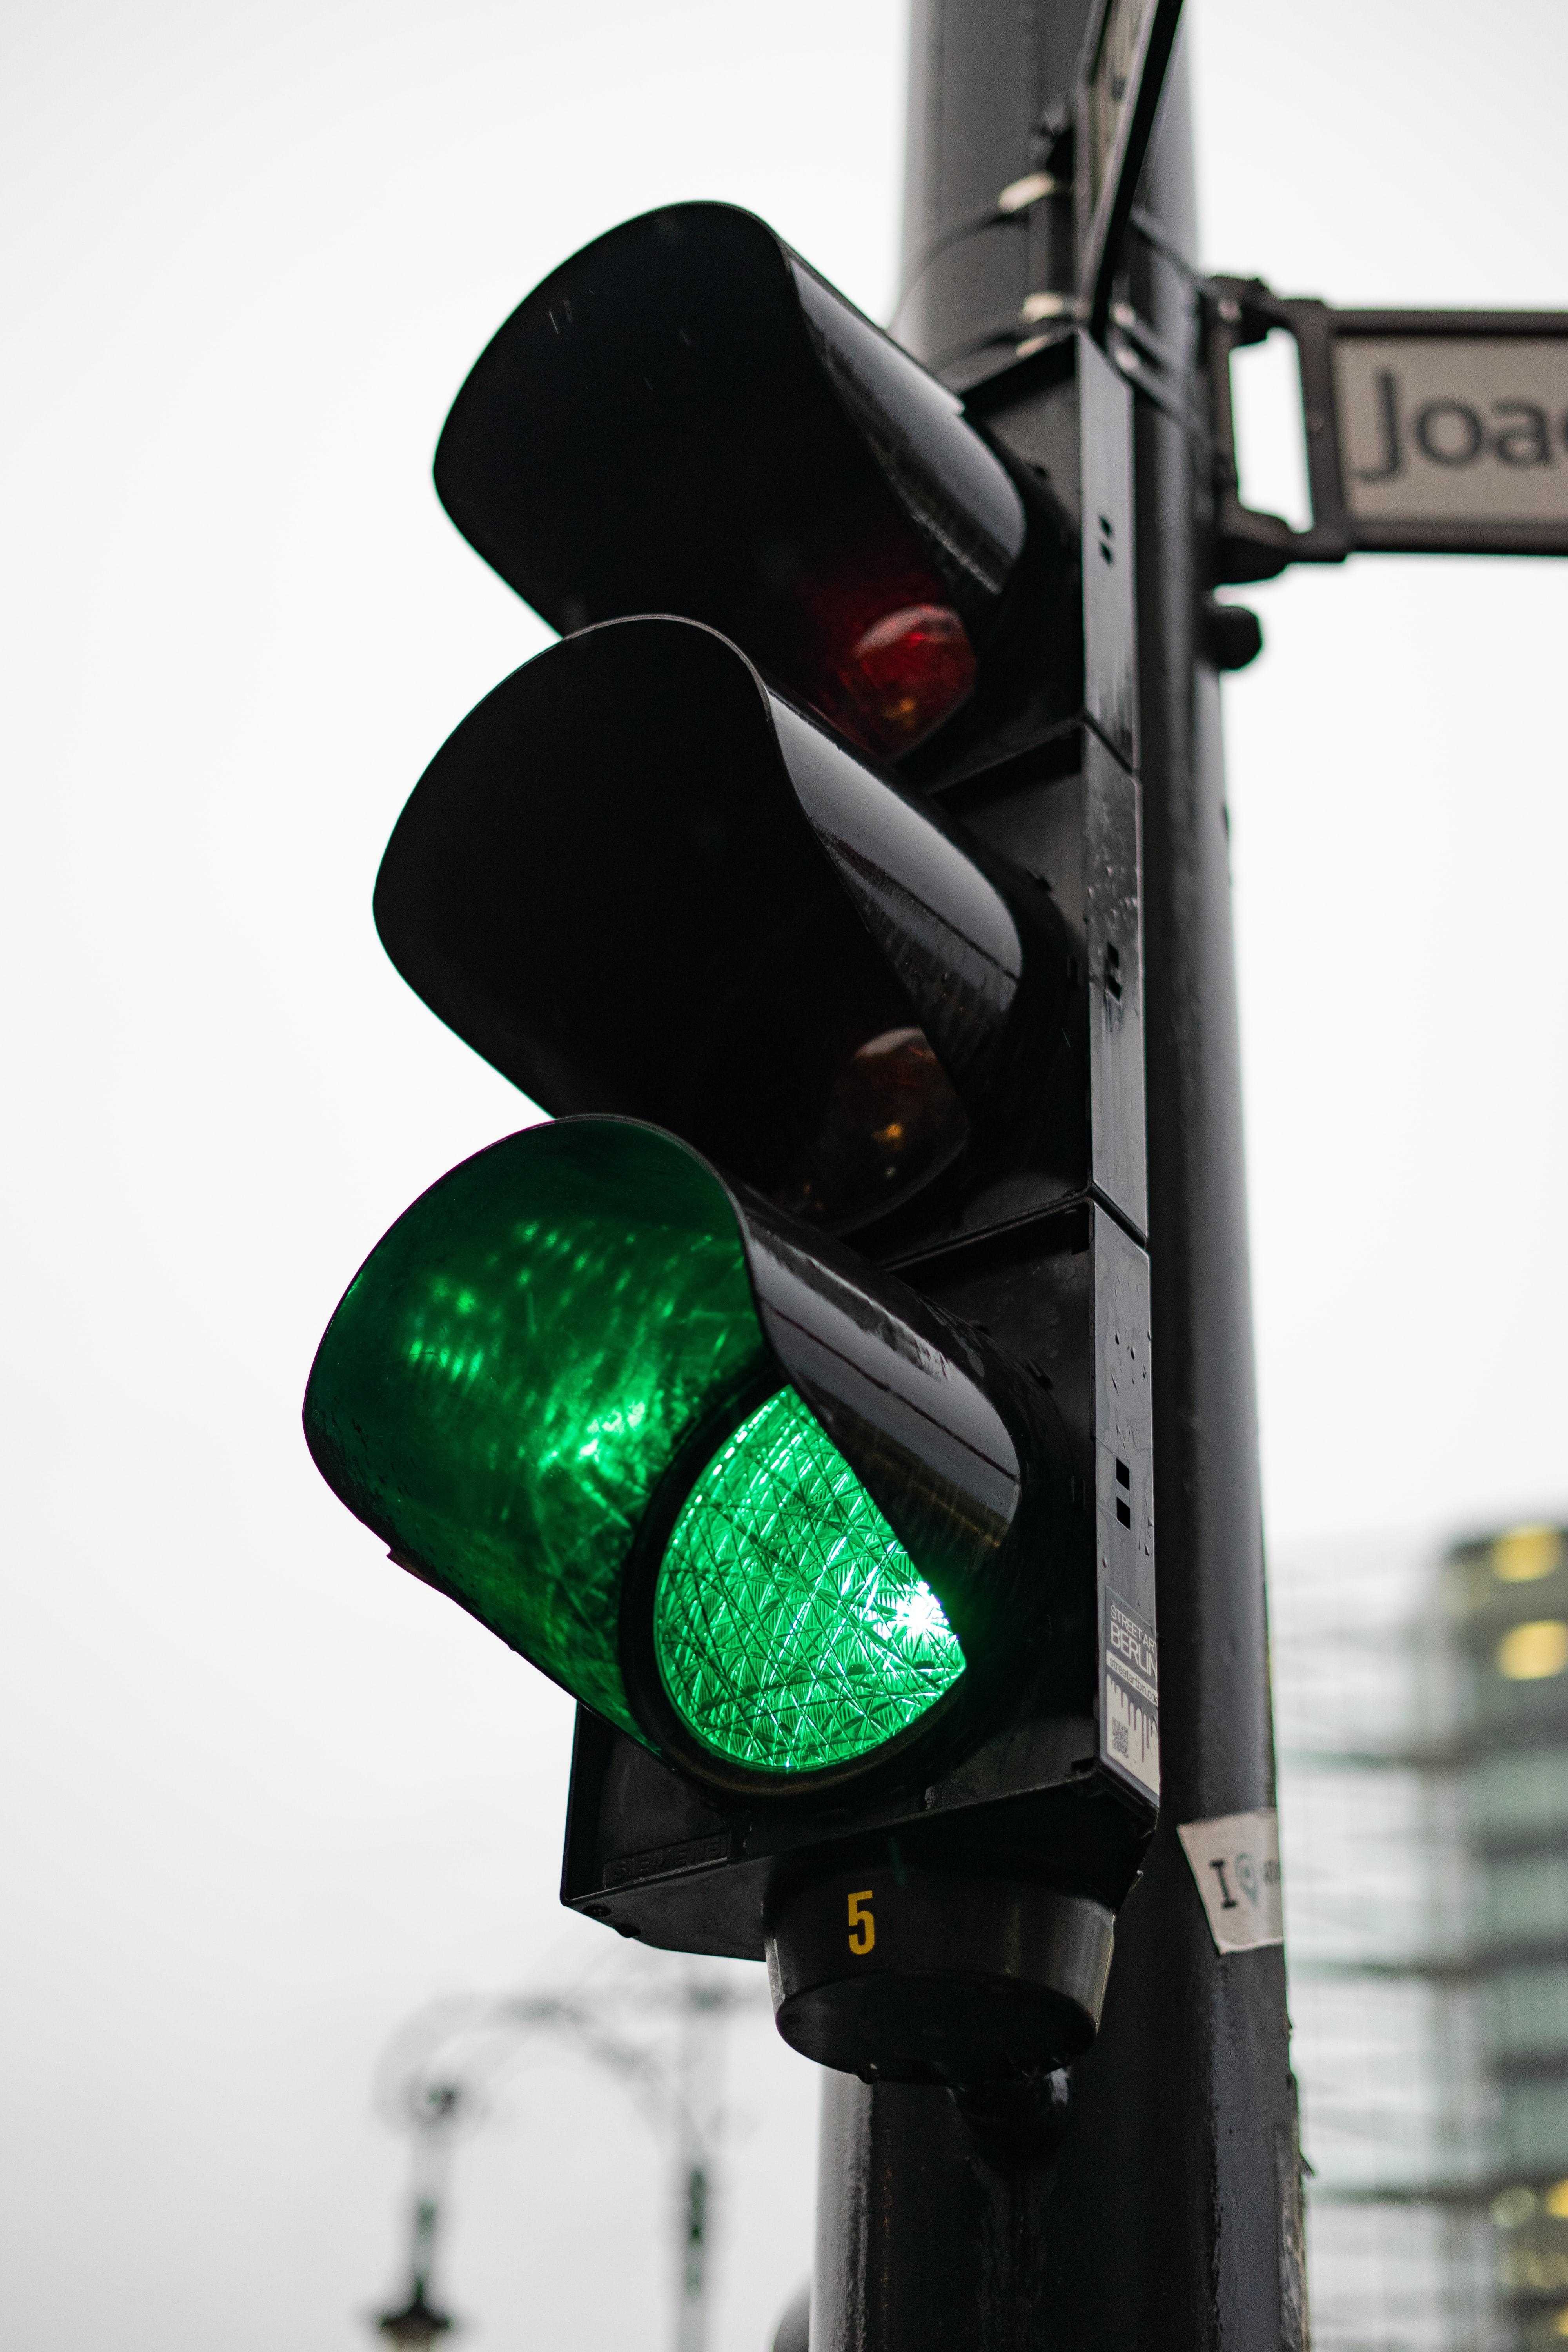 black traffic light on go signal